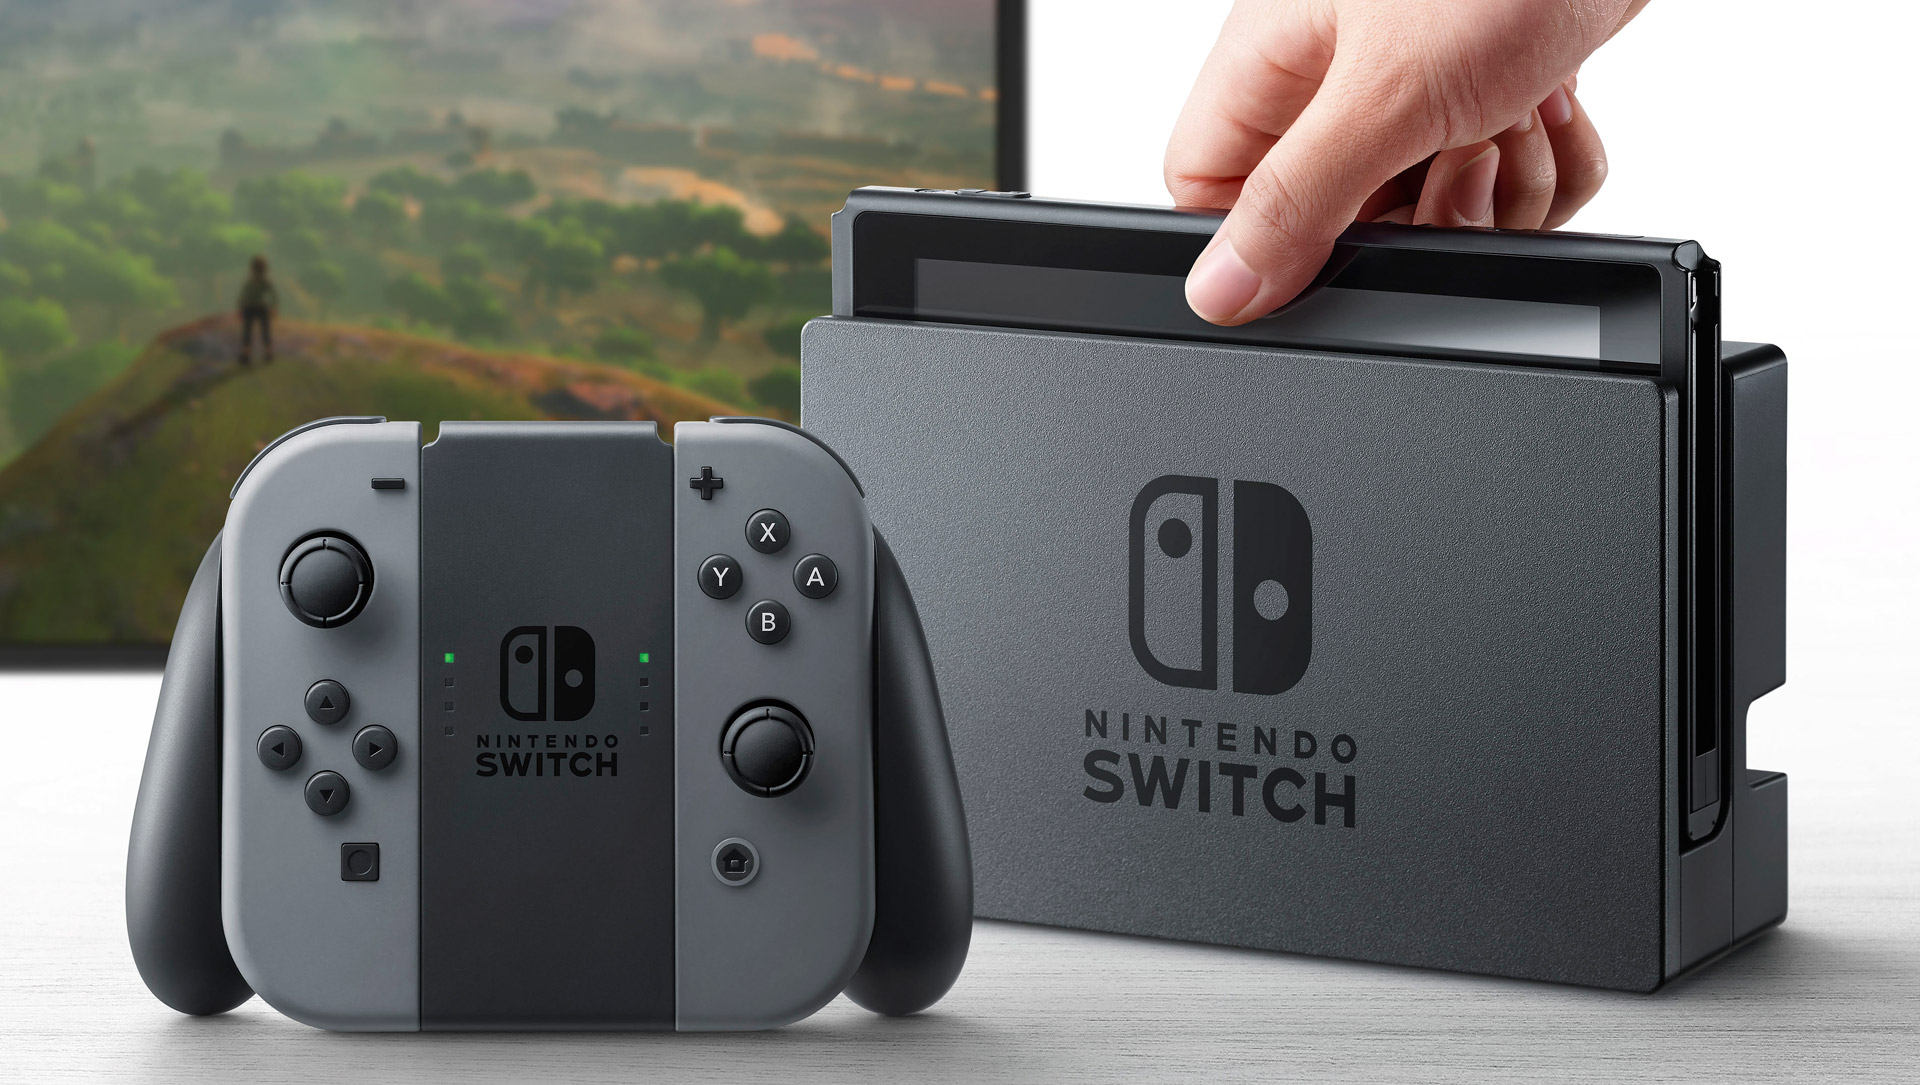 Nintendo Switch accessories unveiled at CES